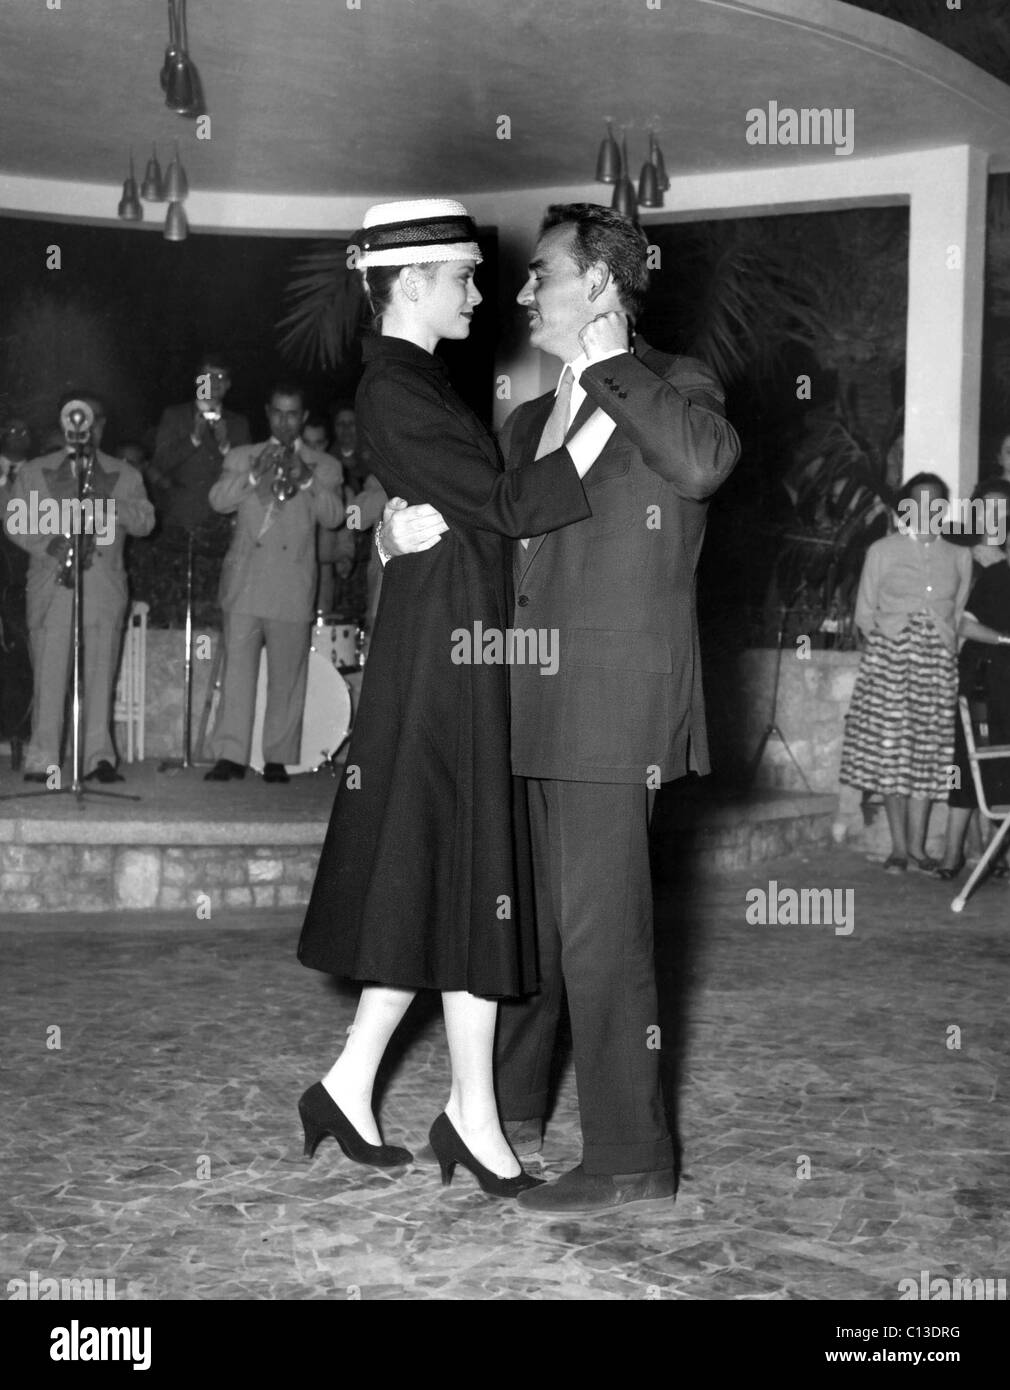 Princess Grace Kelly, Prince Rainier dancing at Palma de Majorca, where a reception was held to honor the recent - Stock Image